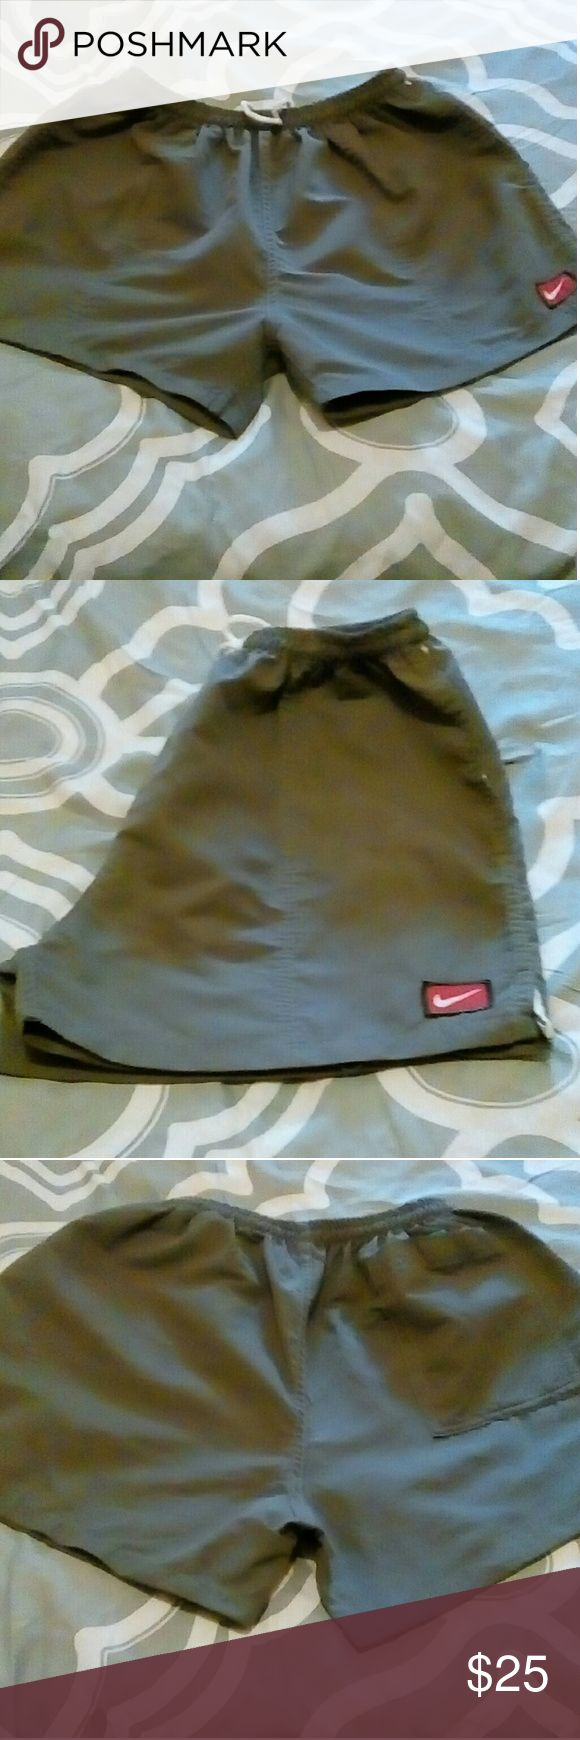 Nike shorts Nike short use once  size one size fit all great for jogging or use as beach shorts. Elastic waist string tie two front pocket one back pocket very cute Nike Shorts